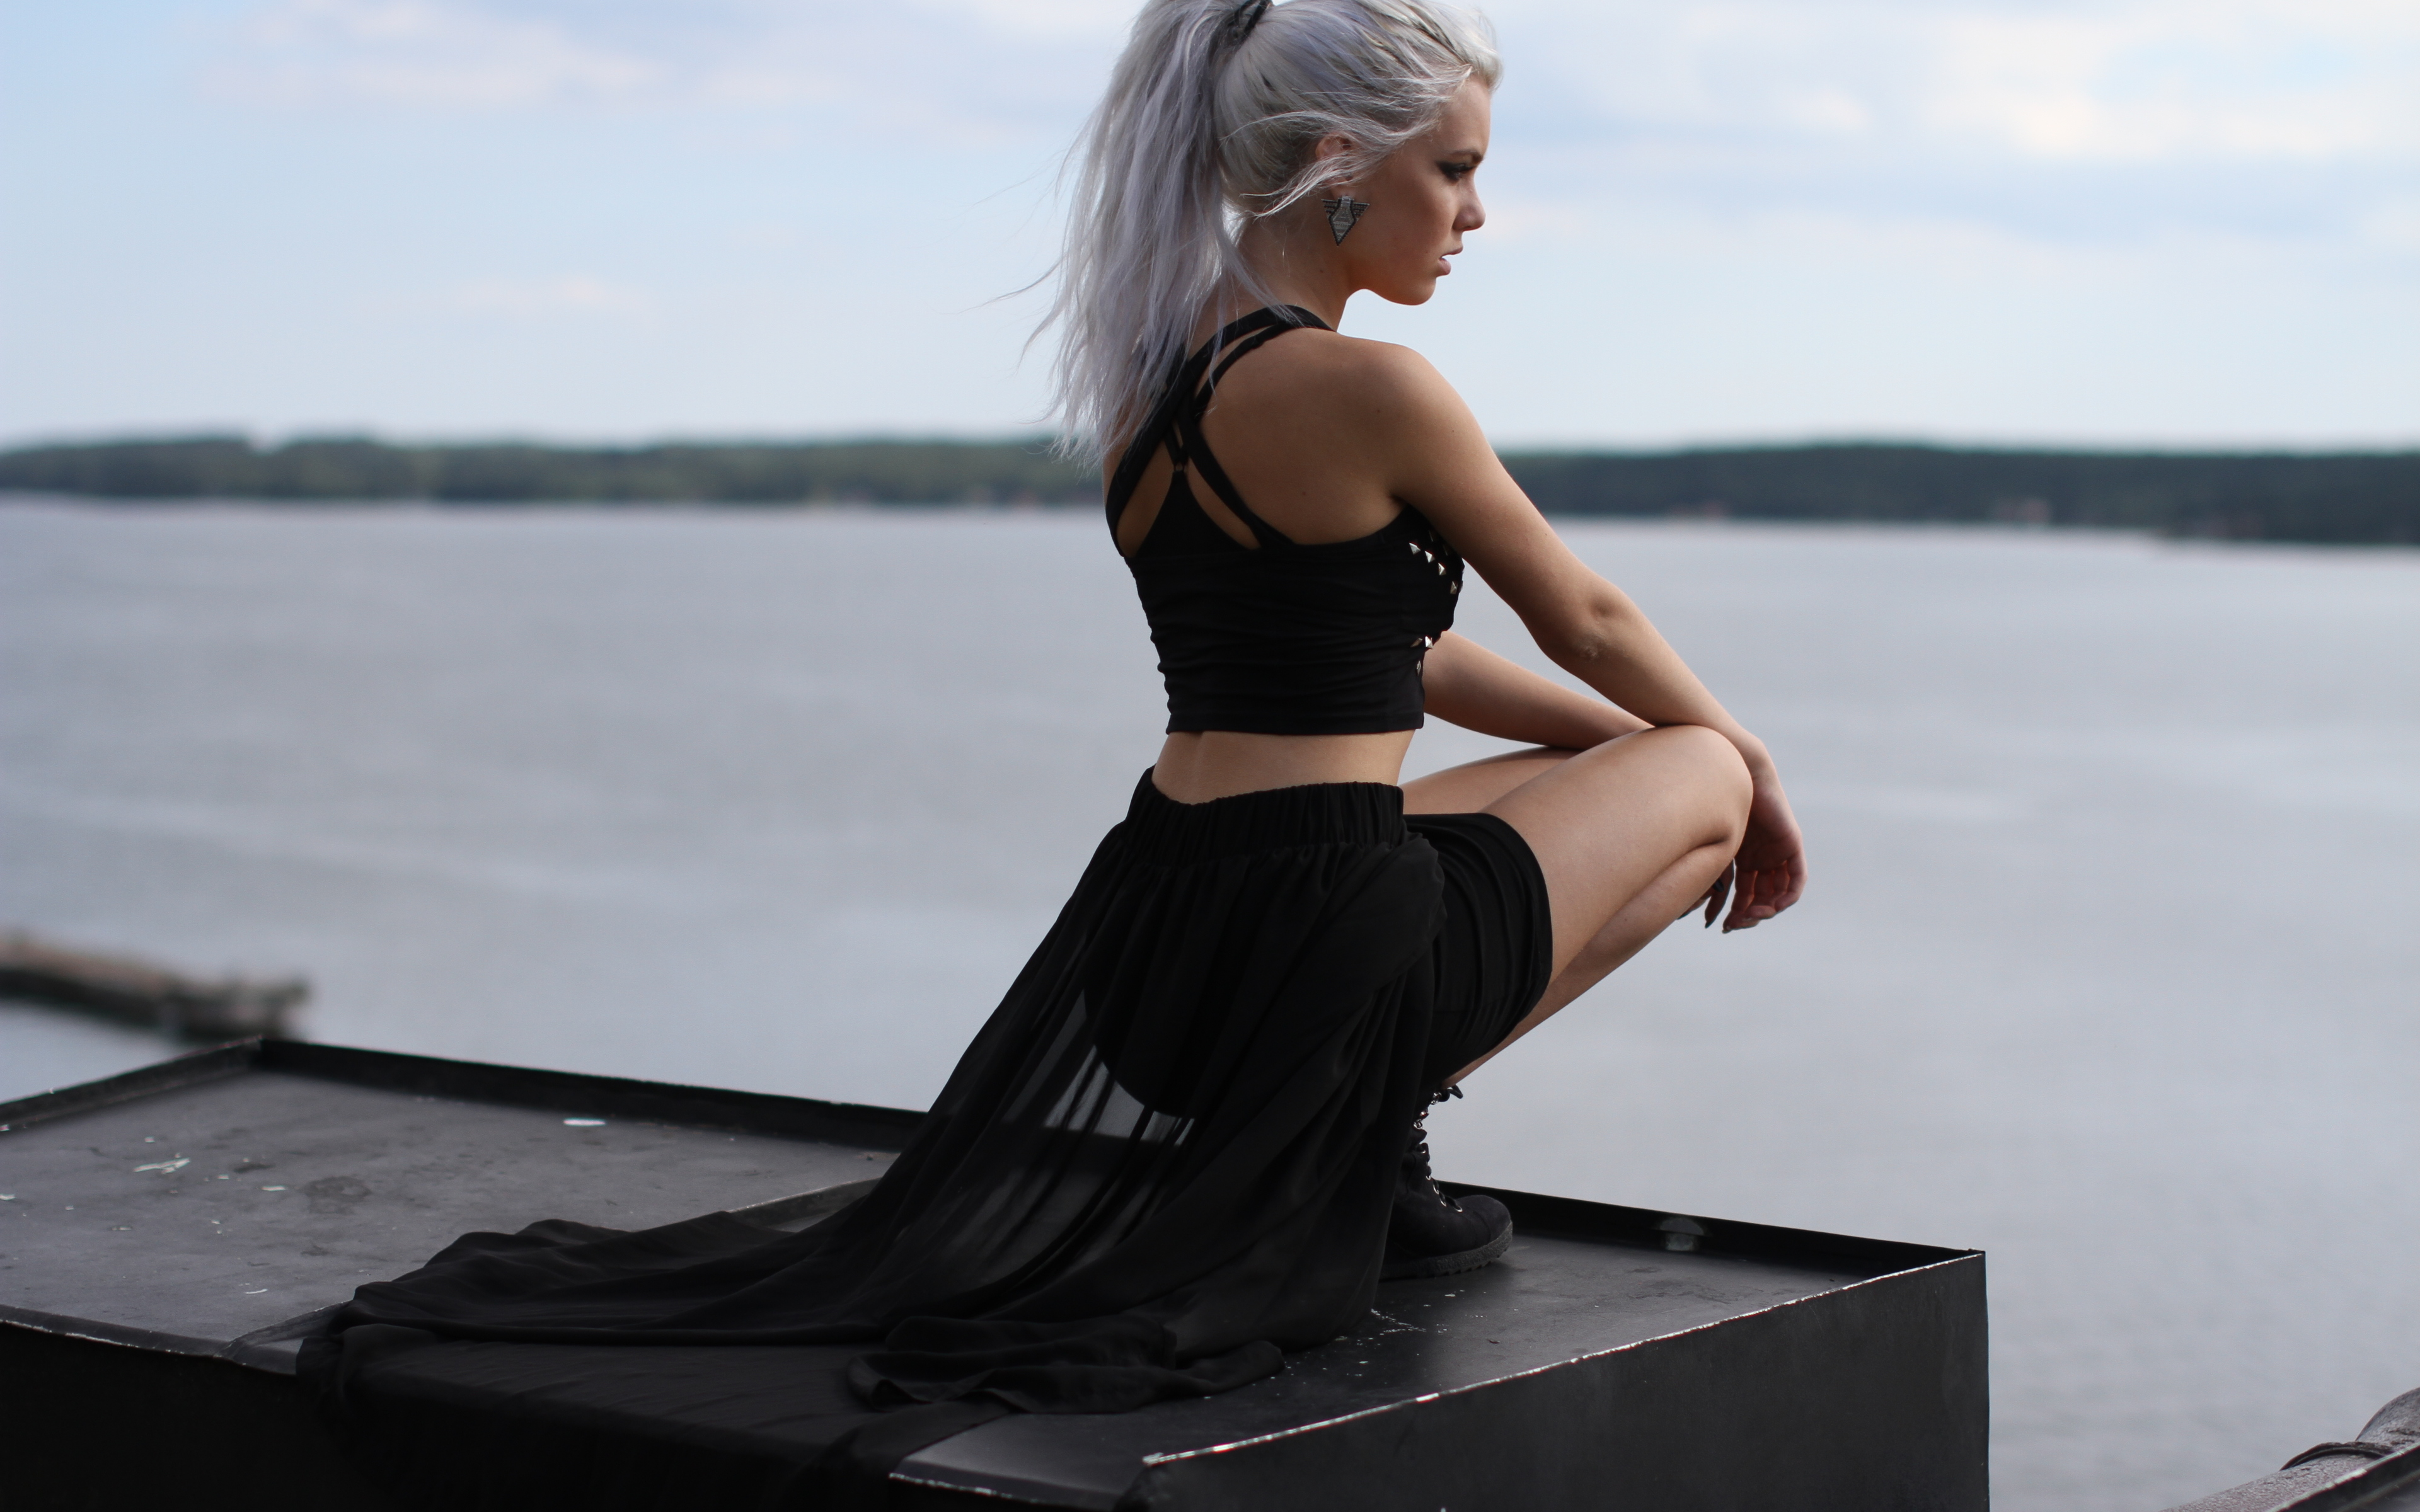 white-hair-girl-alone-a4.jpg